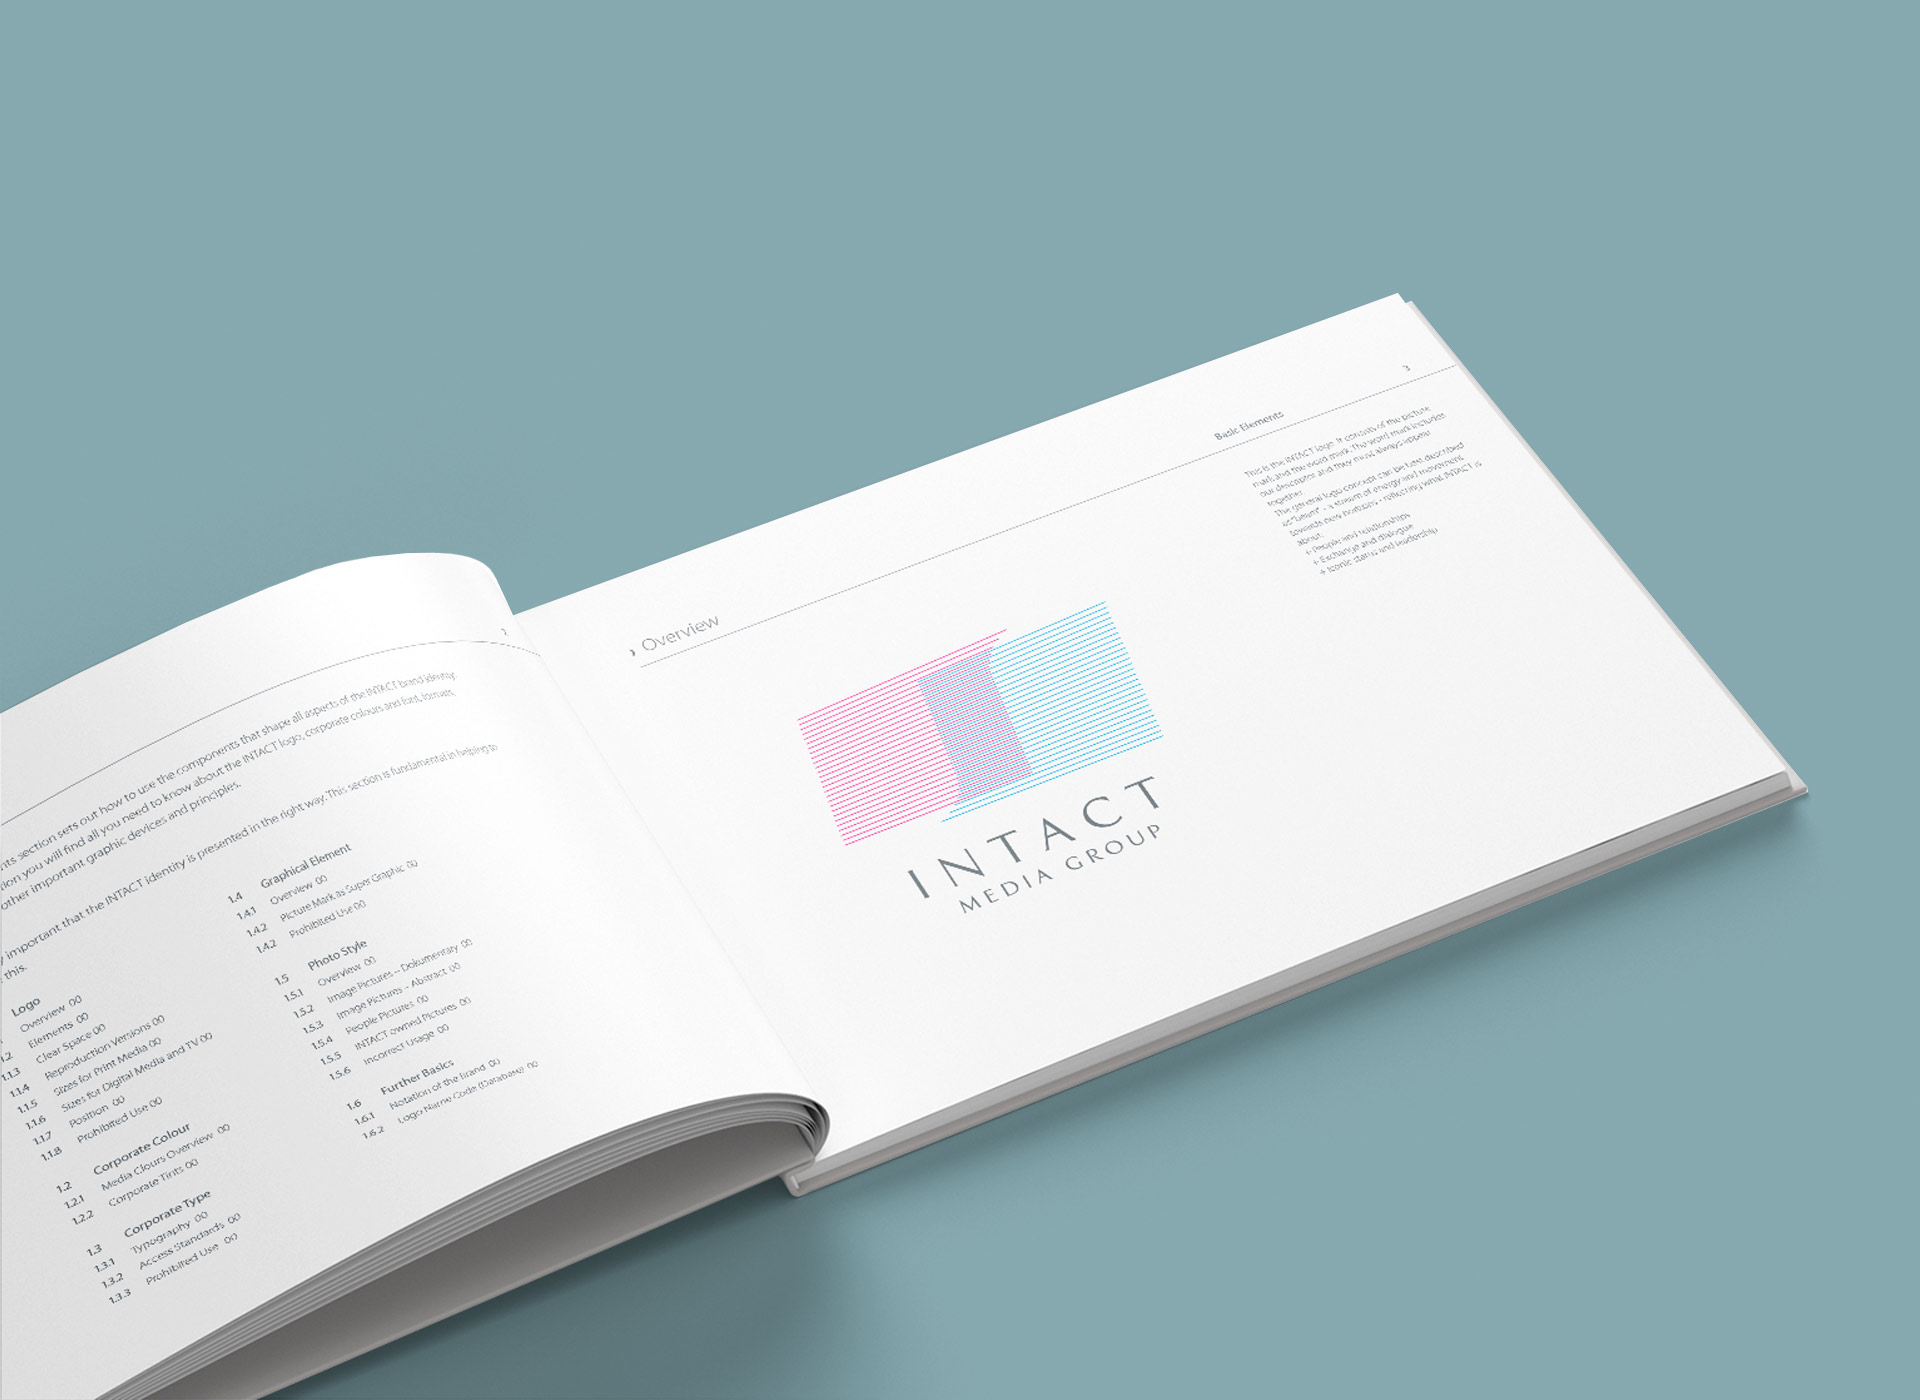 Intact Media Group portfolio inoveo brand book